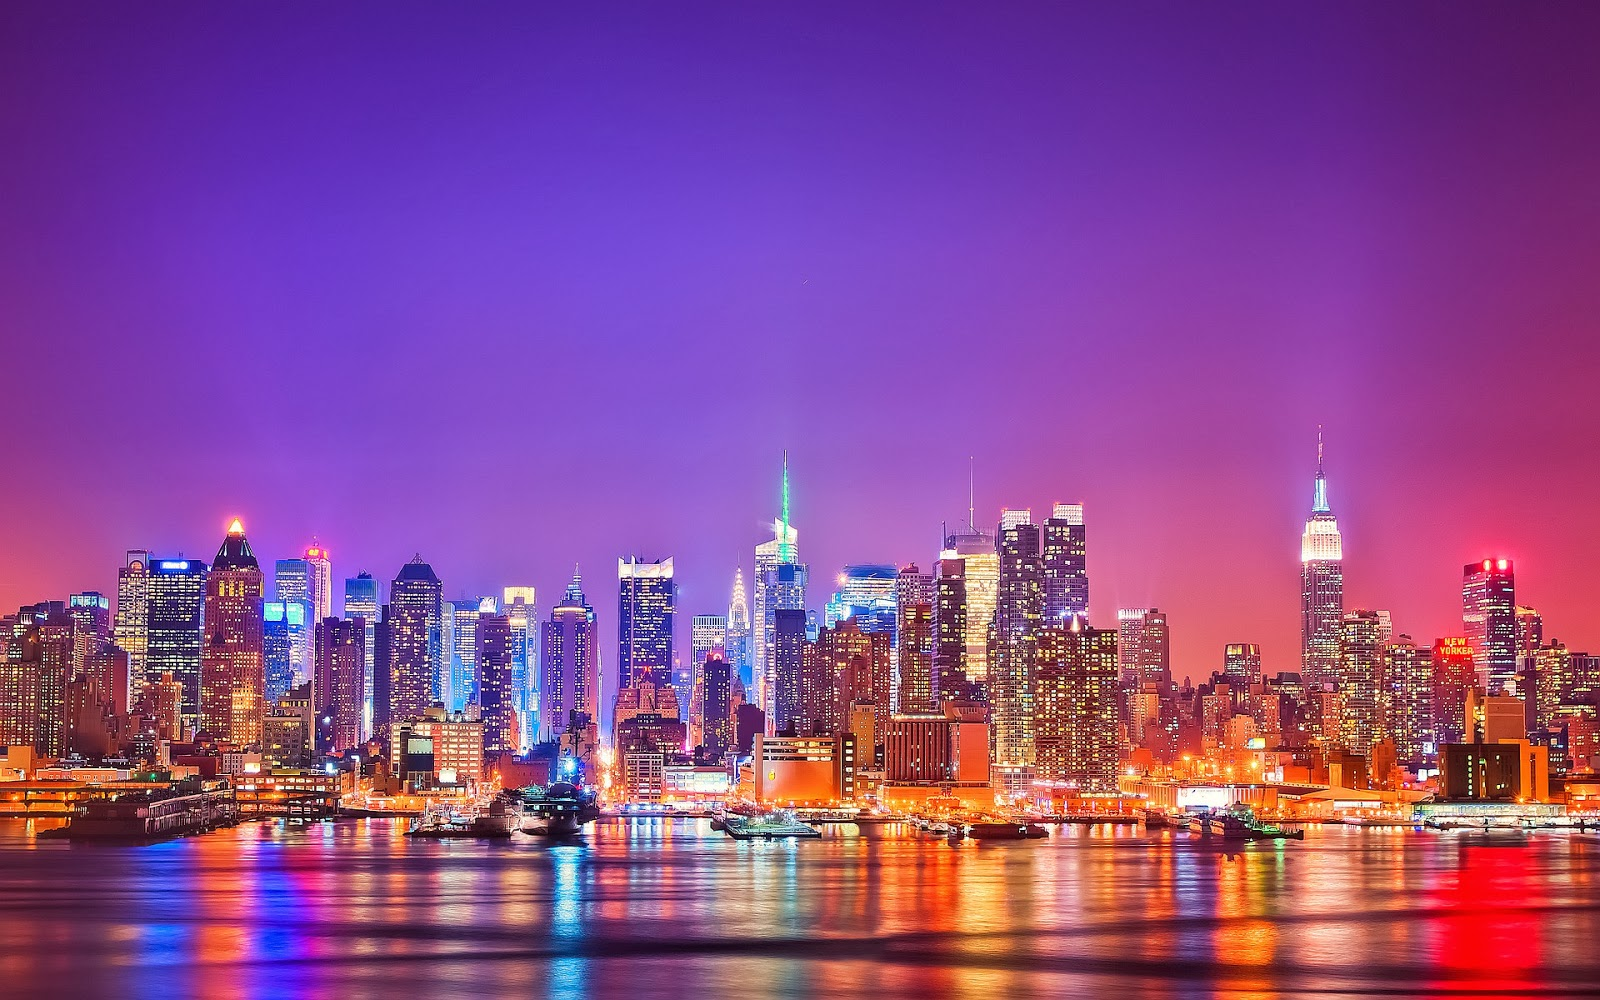 New York City HD WallpapersPics   HD Wallpapers Blog 1600x1000